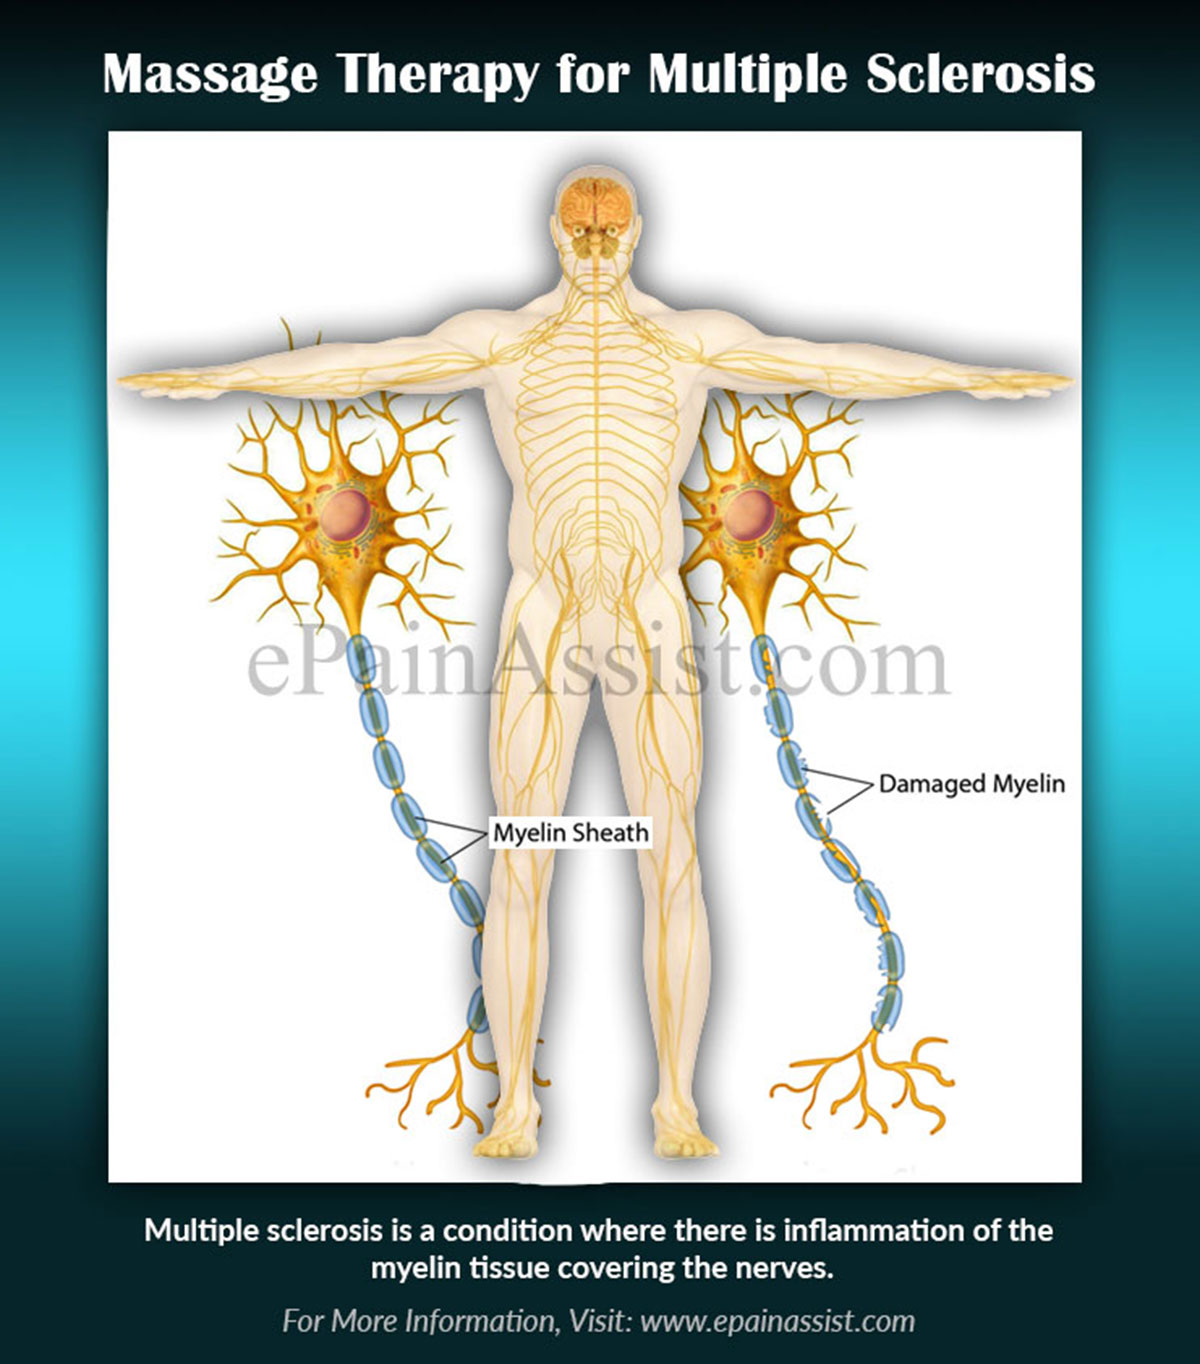 Massage Therapy for Multiple Sclerosis (MS)